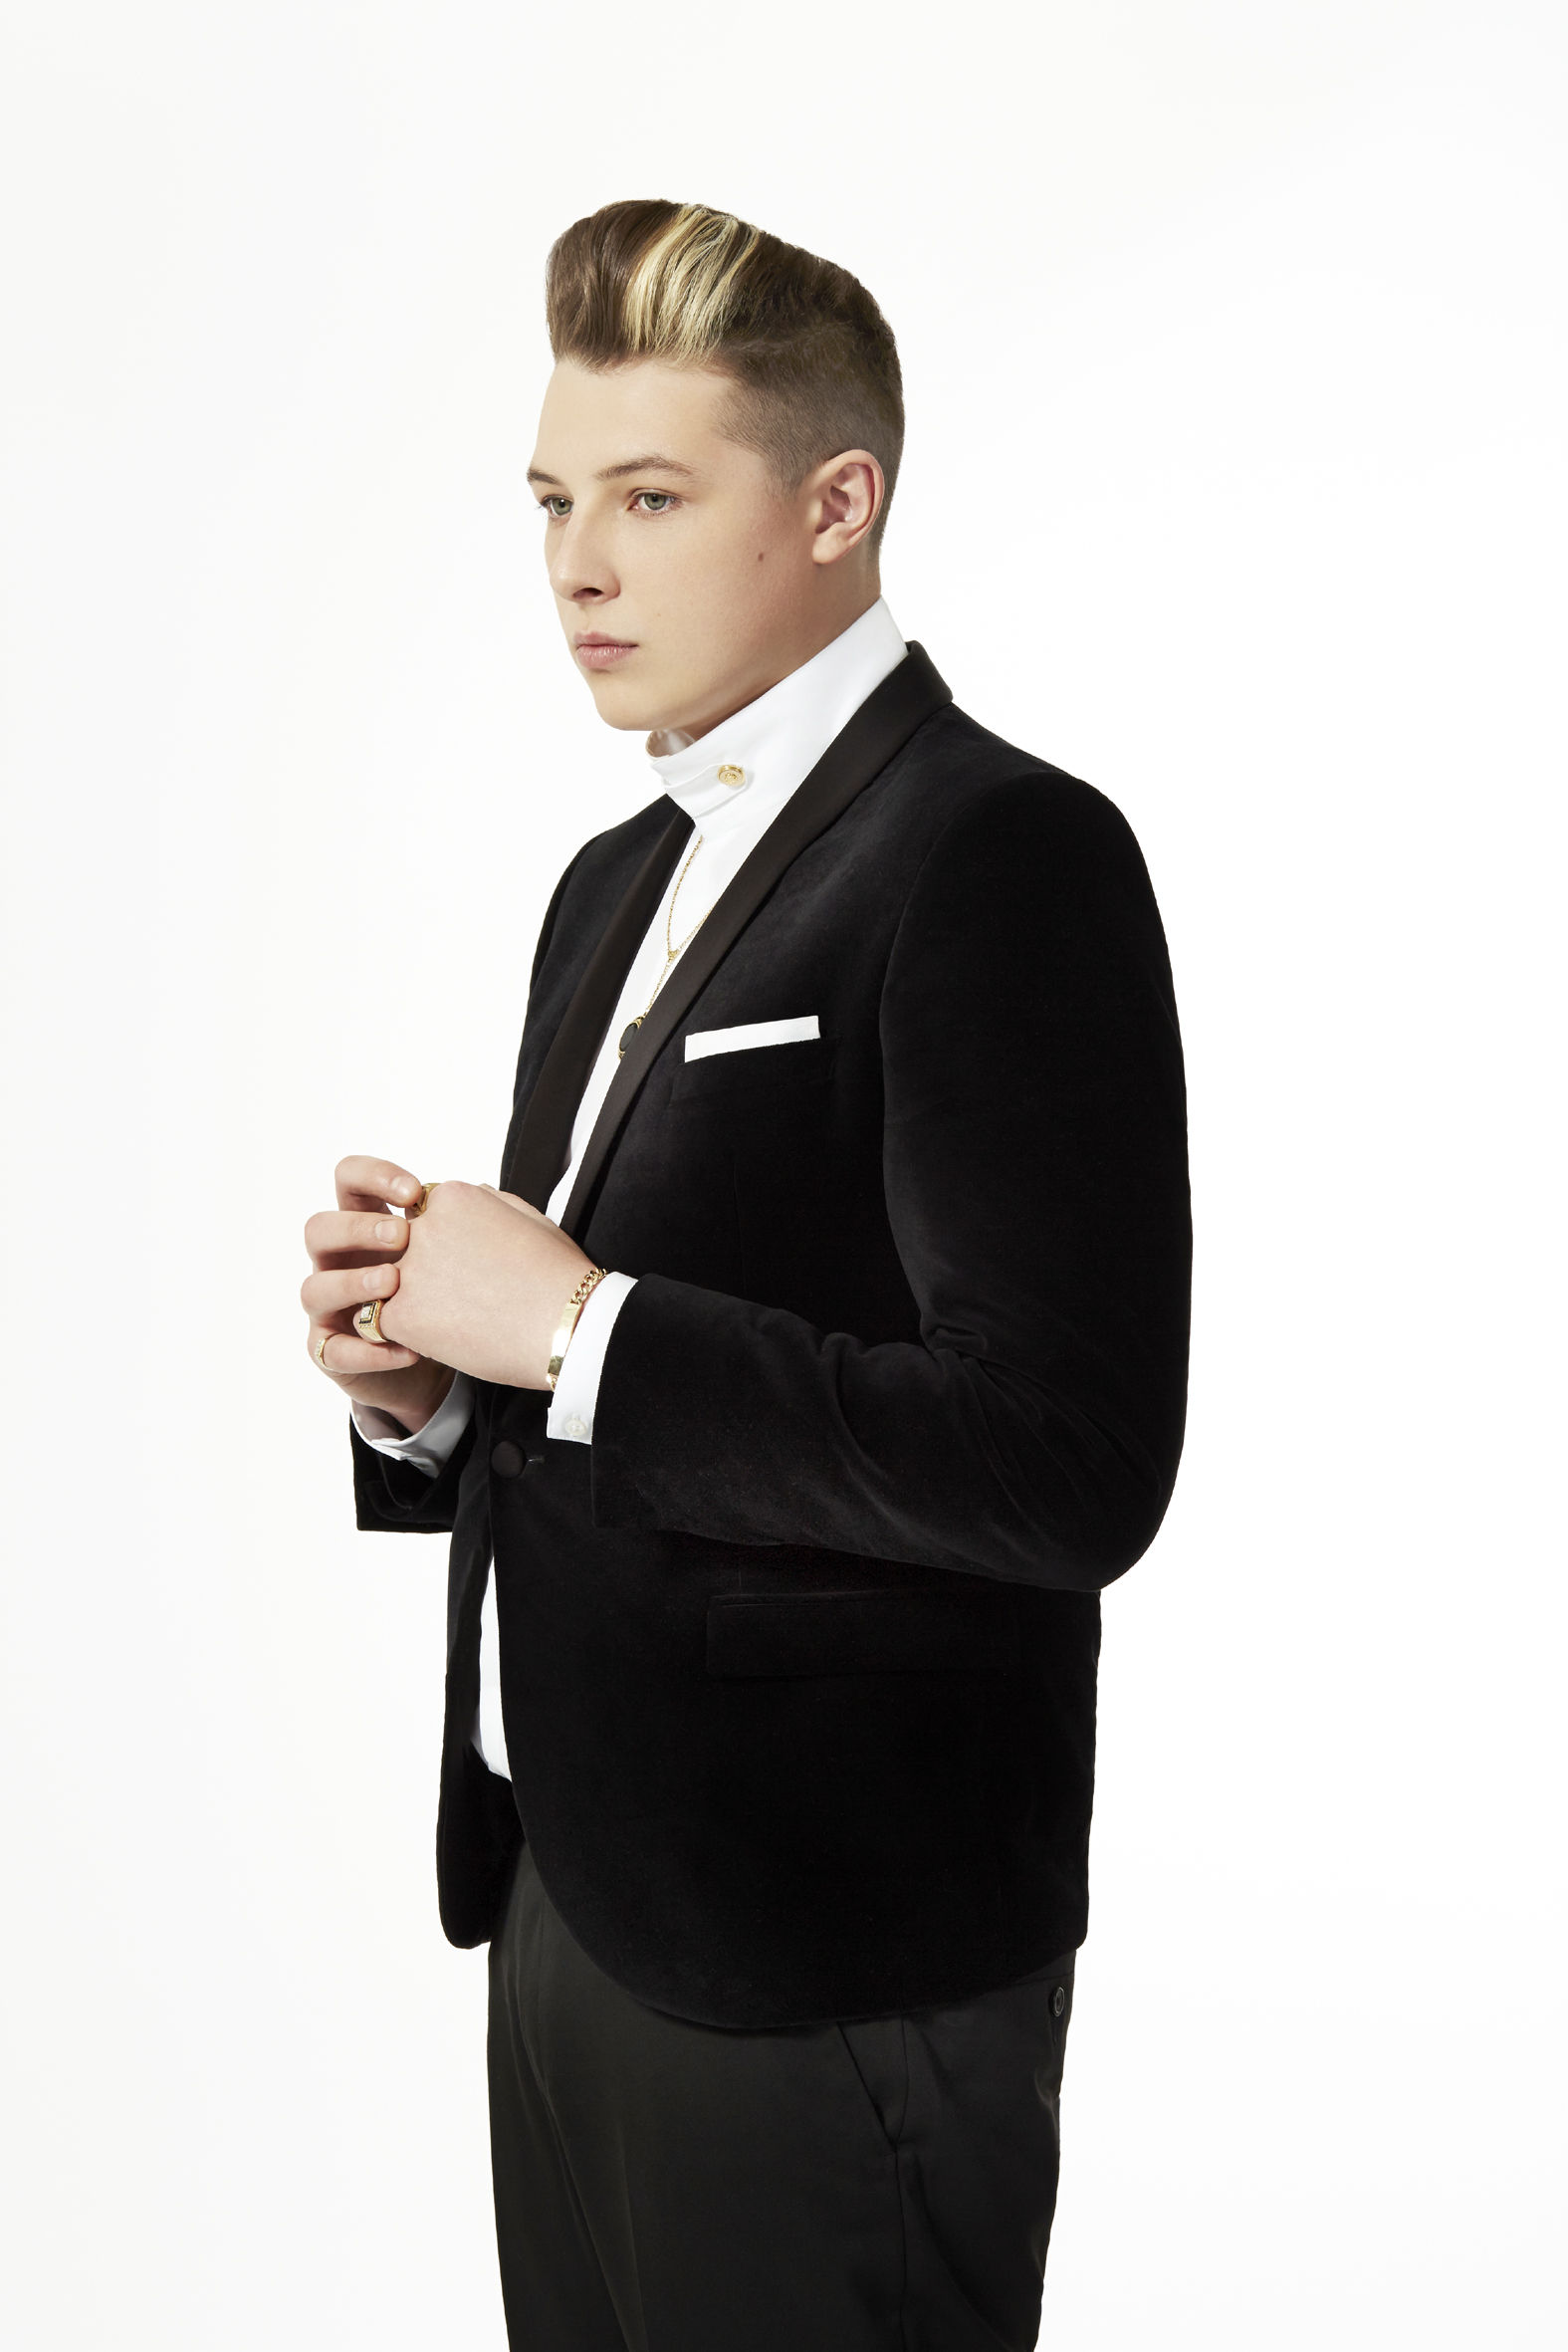 Settle pop star John Newman